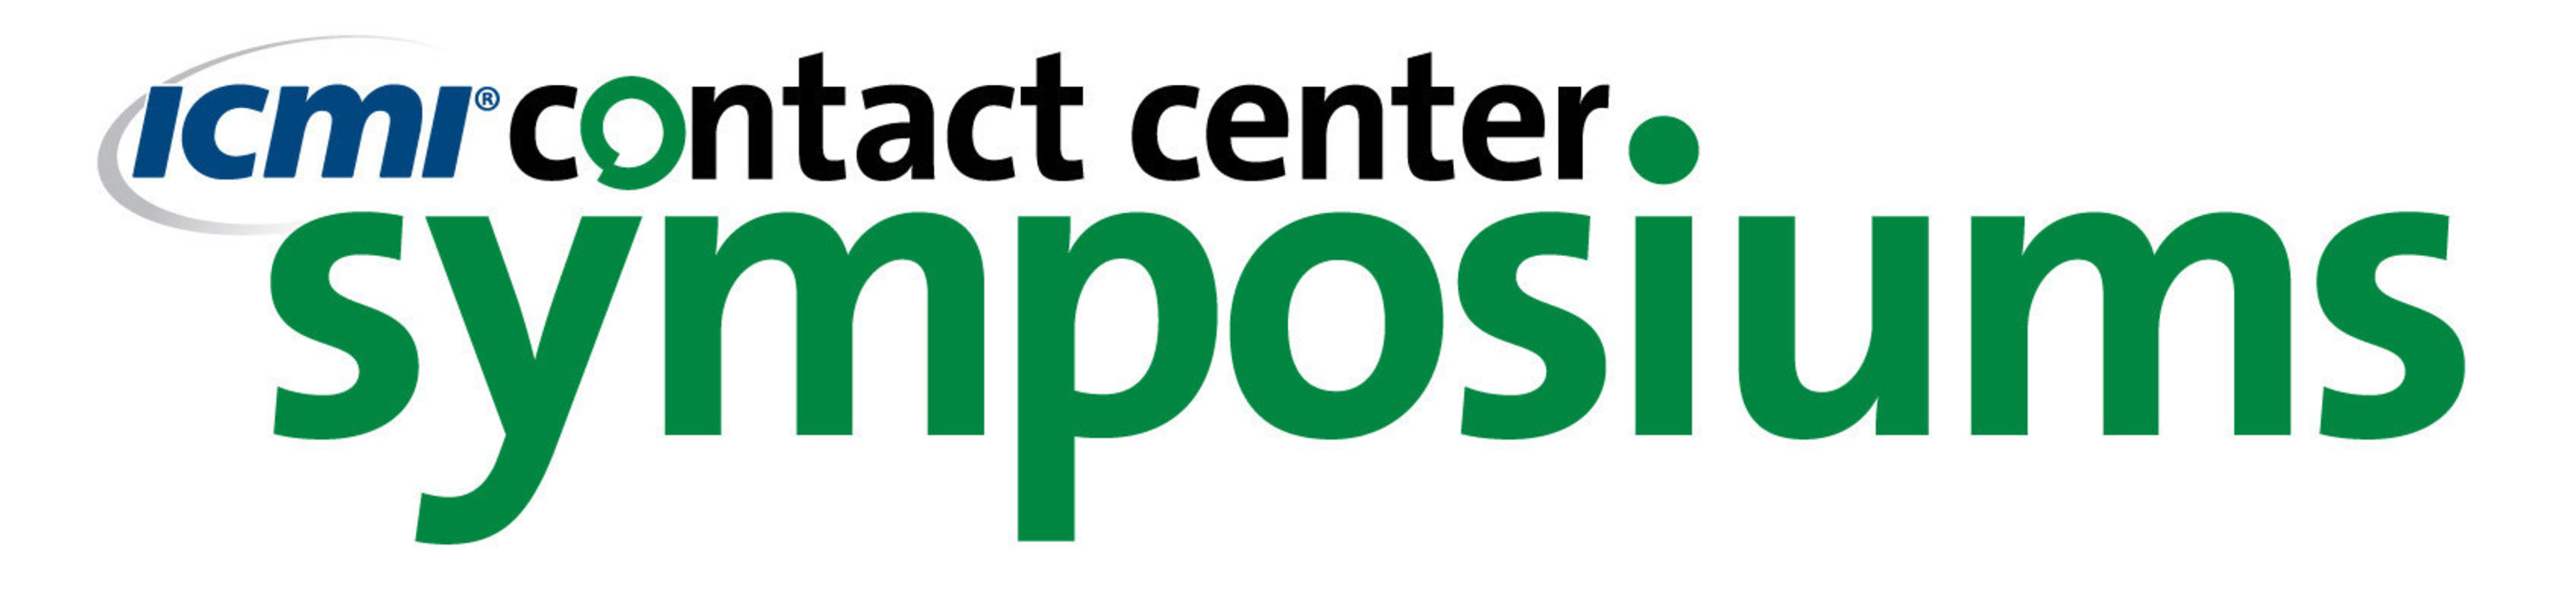 The first 2015 ICMI Contact Center Symposium will take place March 17-20 in San Diego, CA.